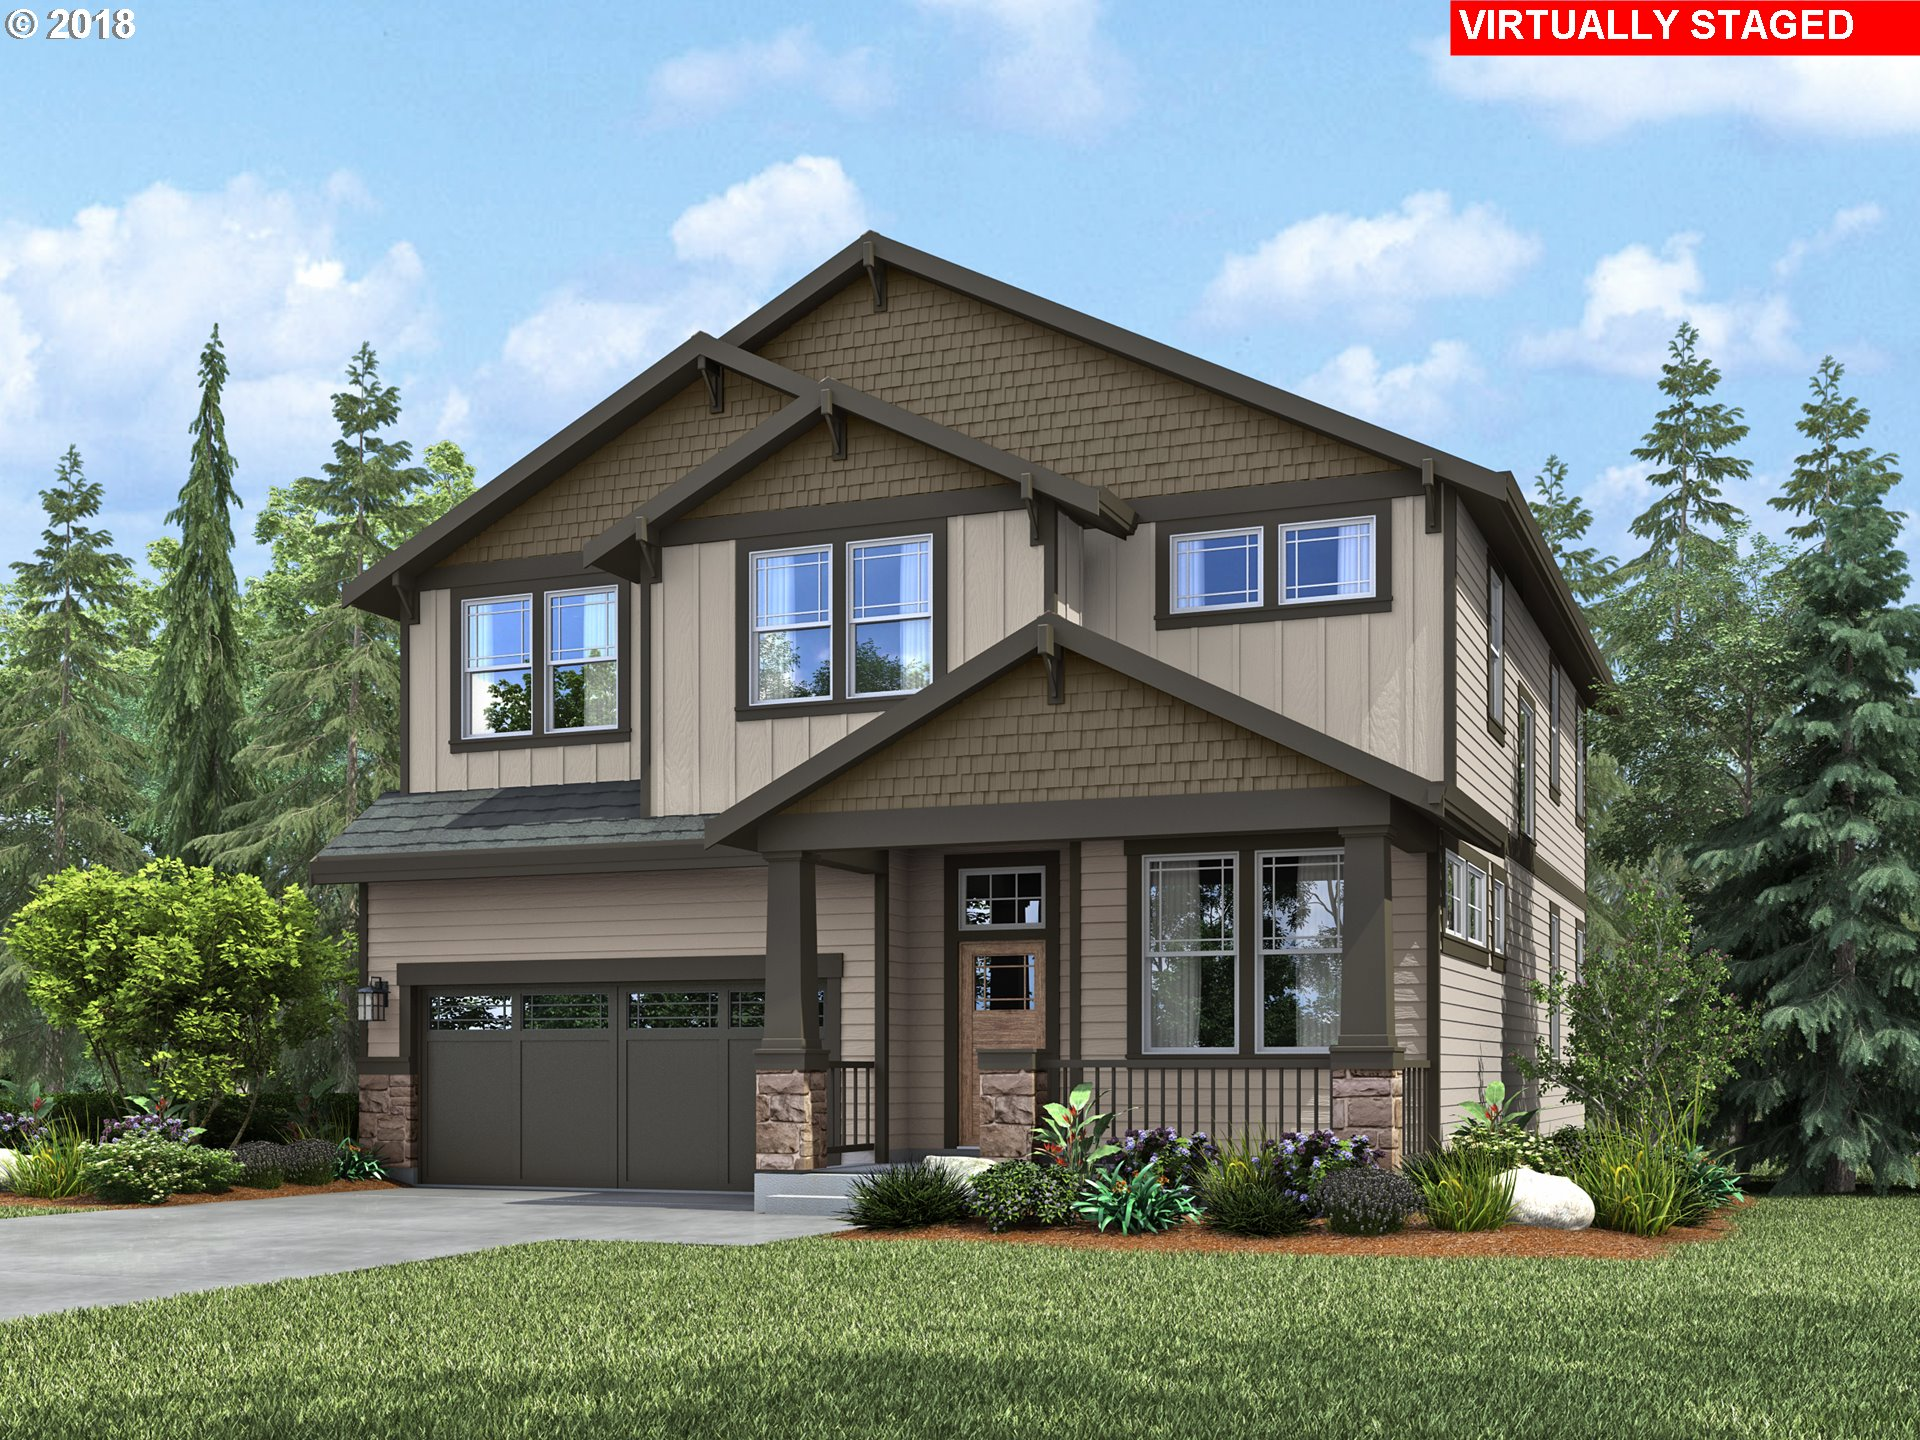 Brand New Master Planned Community! Gourmet kitchen with slab granite island, hardwood floors, & stainless appliances. Large master suite w/ walk-in closet. 3 Year Builder Warranty. Pics are model homes at previous communities. Brand new finish options! Exterior will vary. CLOSED ON TUES/WED